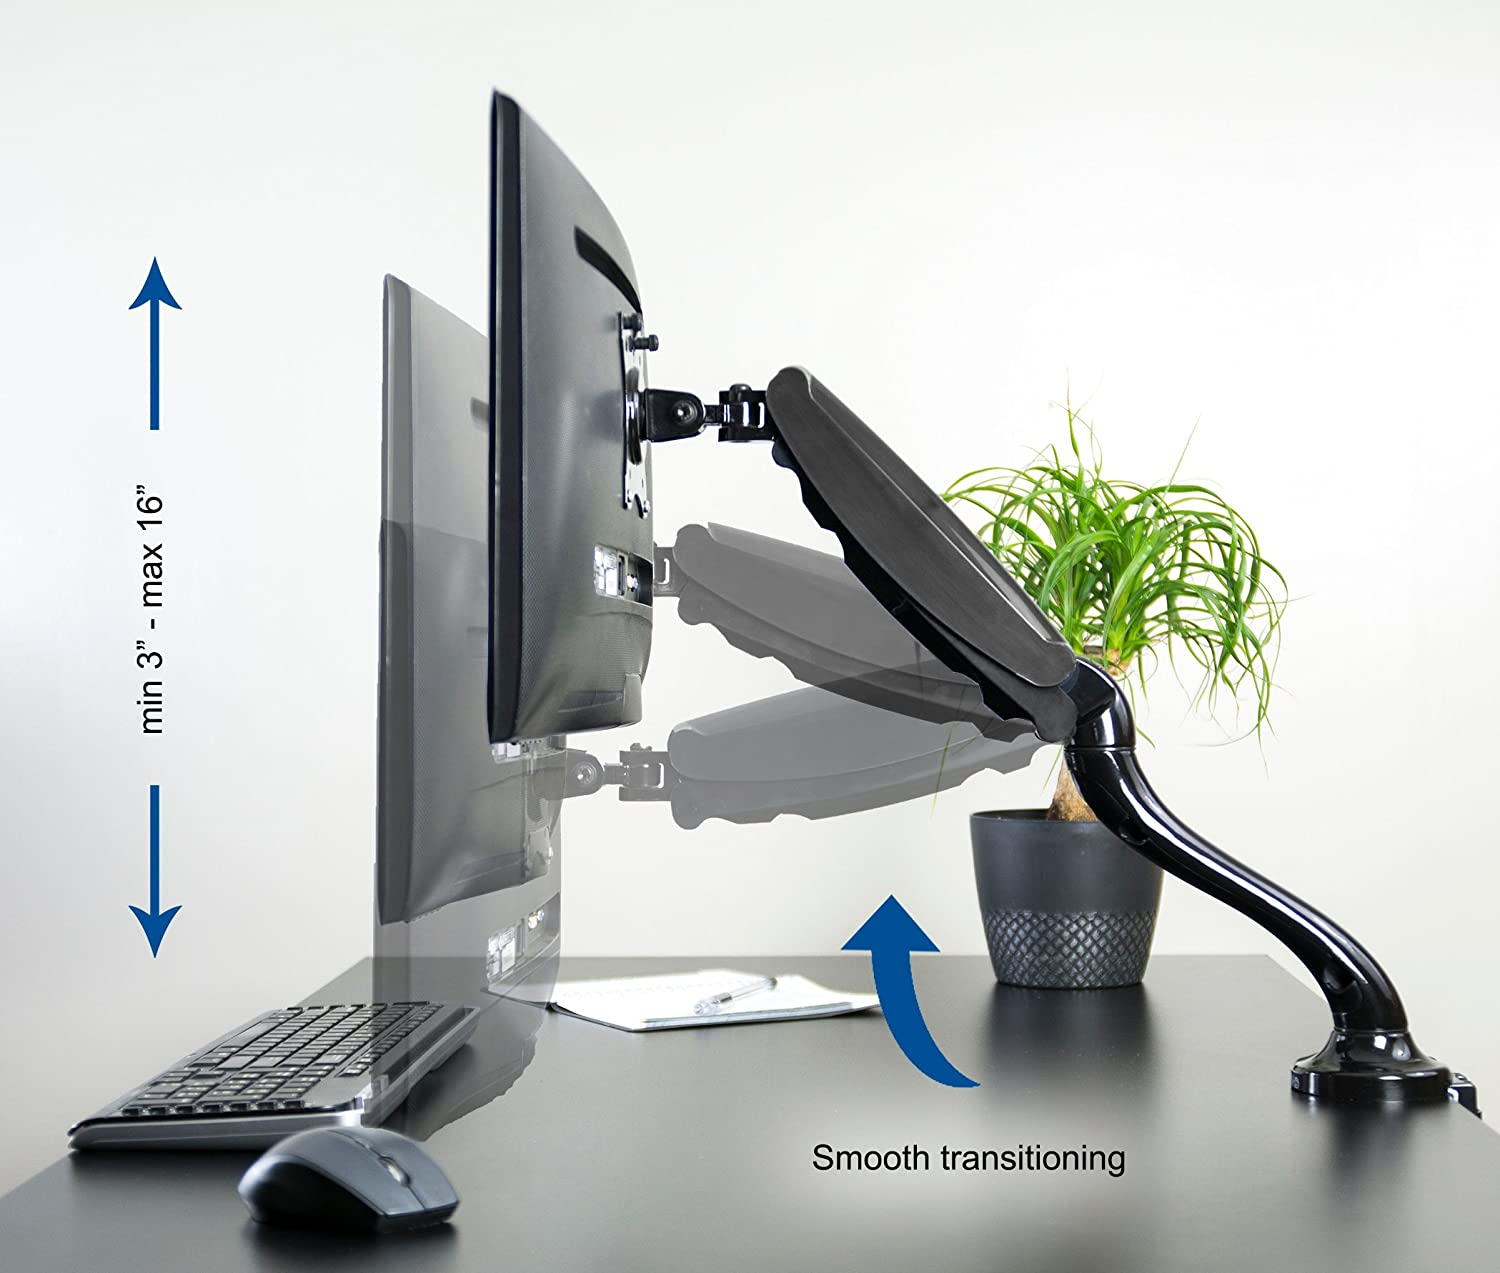 Amazon com vivo triple lcd monitor desk mount stand heavy duty fully - Amazon Com Vivo Single Lcd Monitor Desktop Mount Stand Black Deluxe With Gas Spring For 1 Screen Up To 27 Stand V001b Computer Monitor Stands